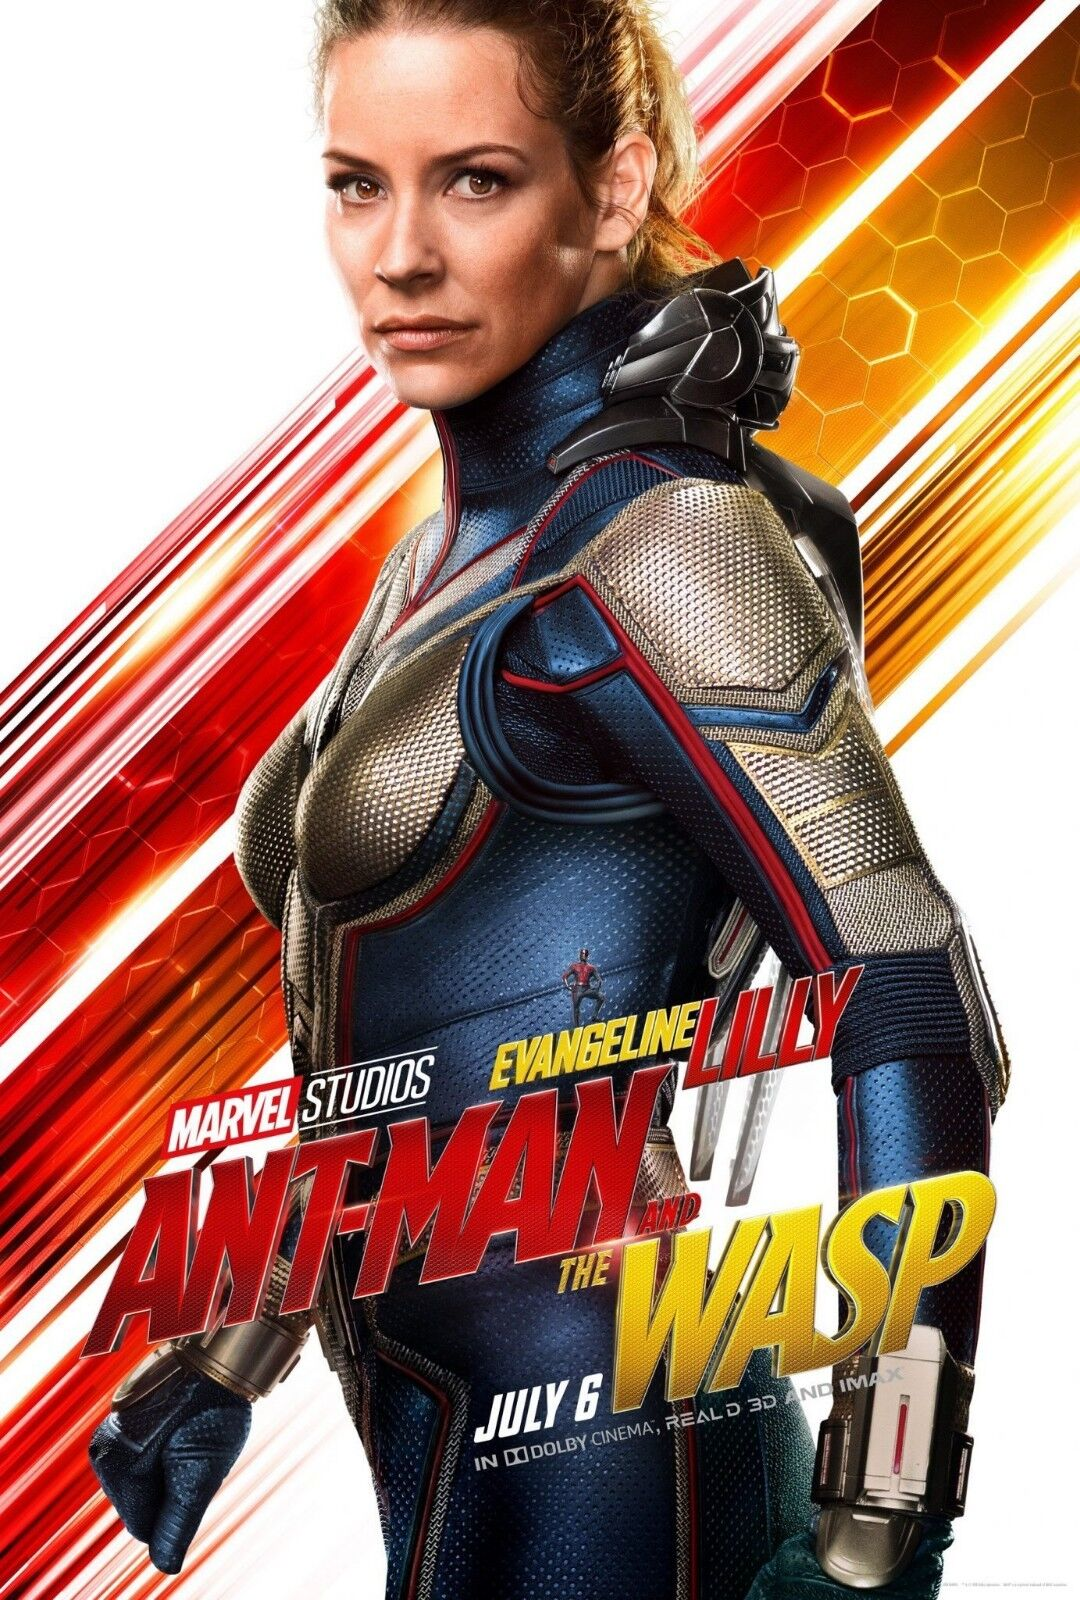 Ant Man And The Wasp Poster 48x32 36x24 2018 Evangeline Lilly Movie